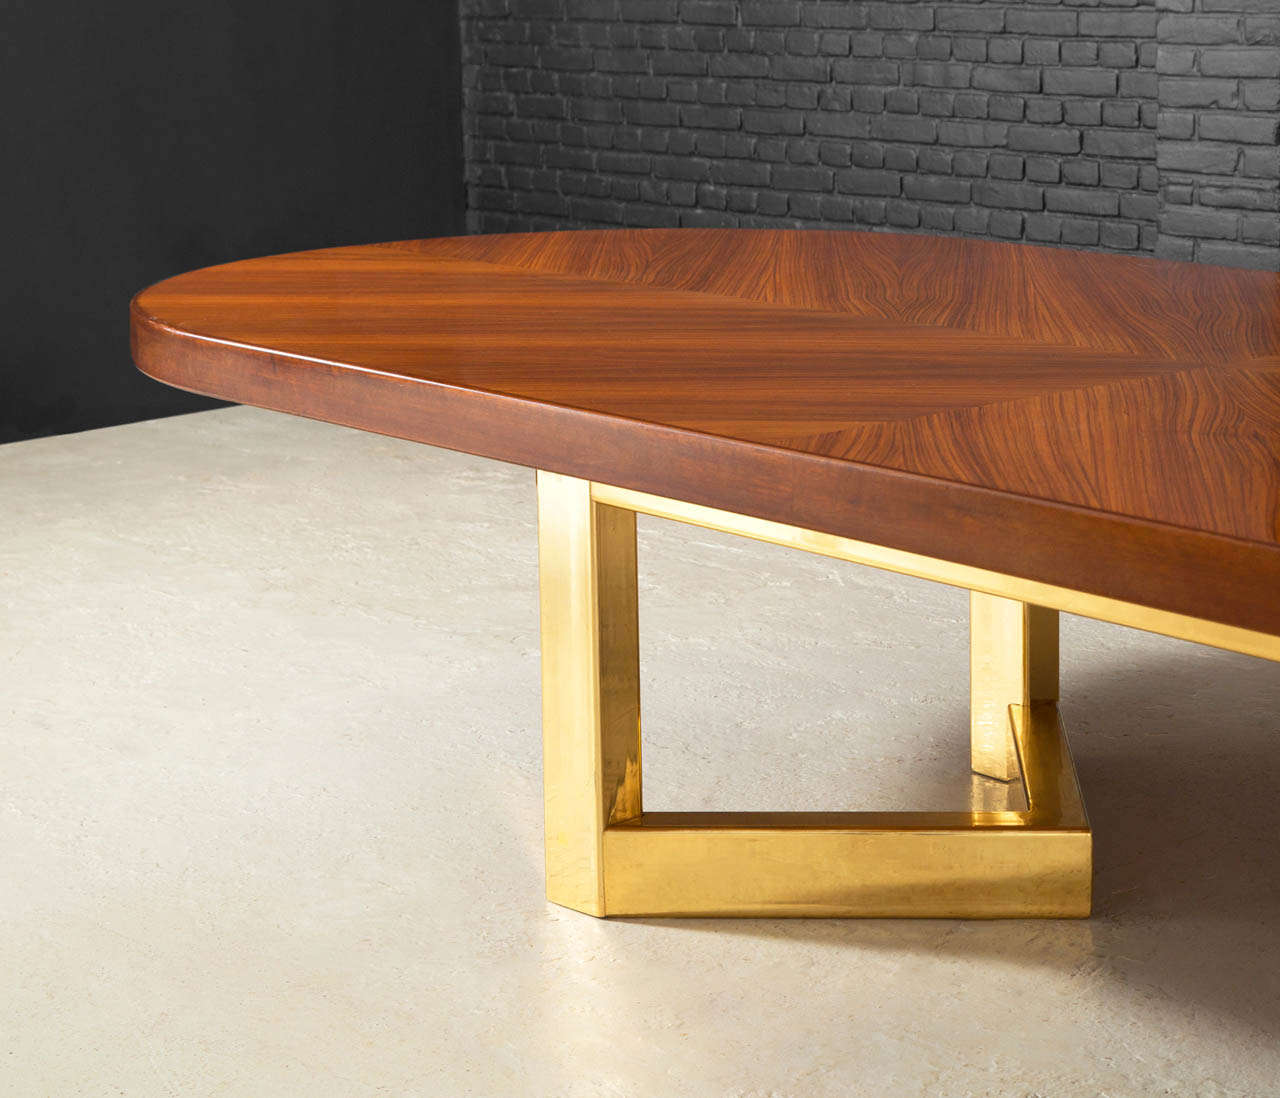 Foot Conference Table In Rosewood With Brass Base For Sale At Stdibs - 4 foot conference table